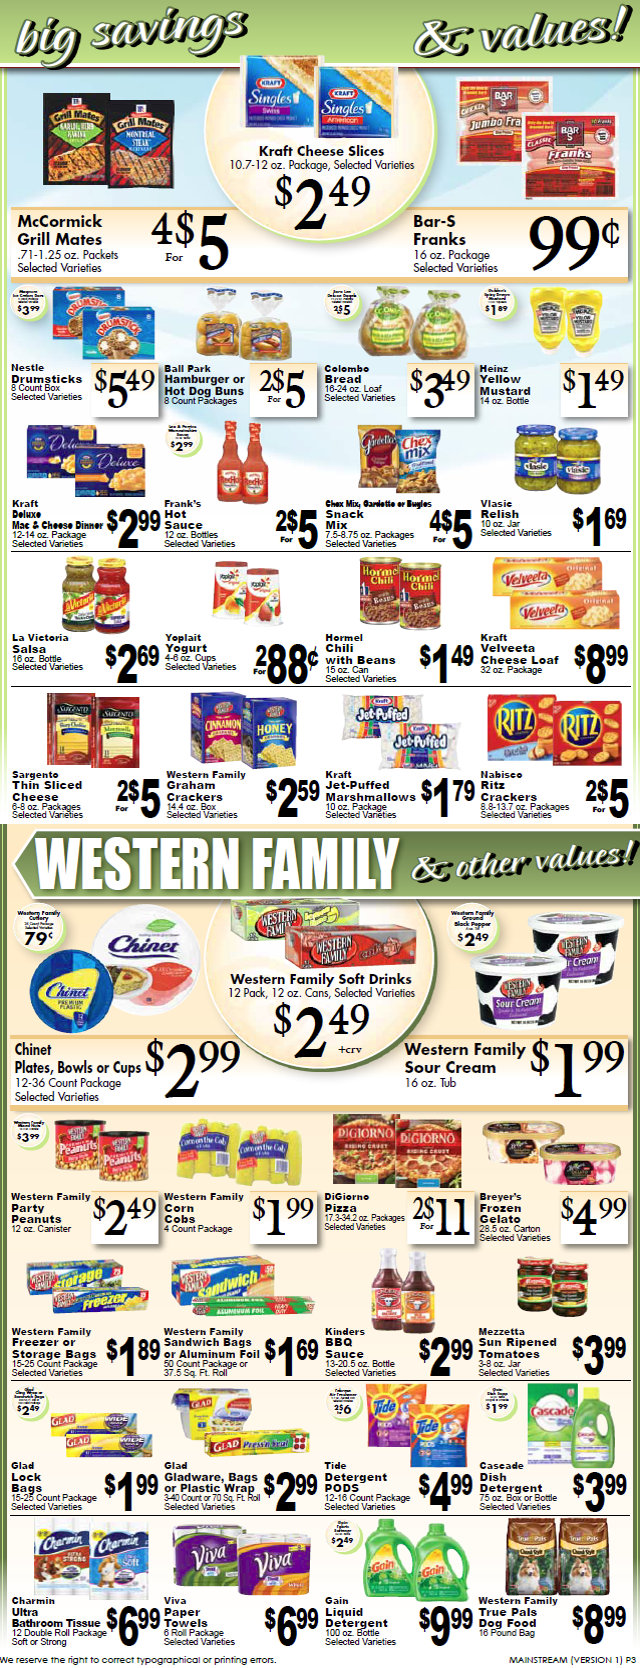 Big Trees Market Weekly Specials & Grocery Ads Through September 6th